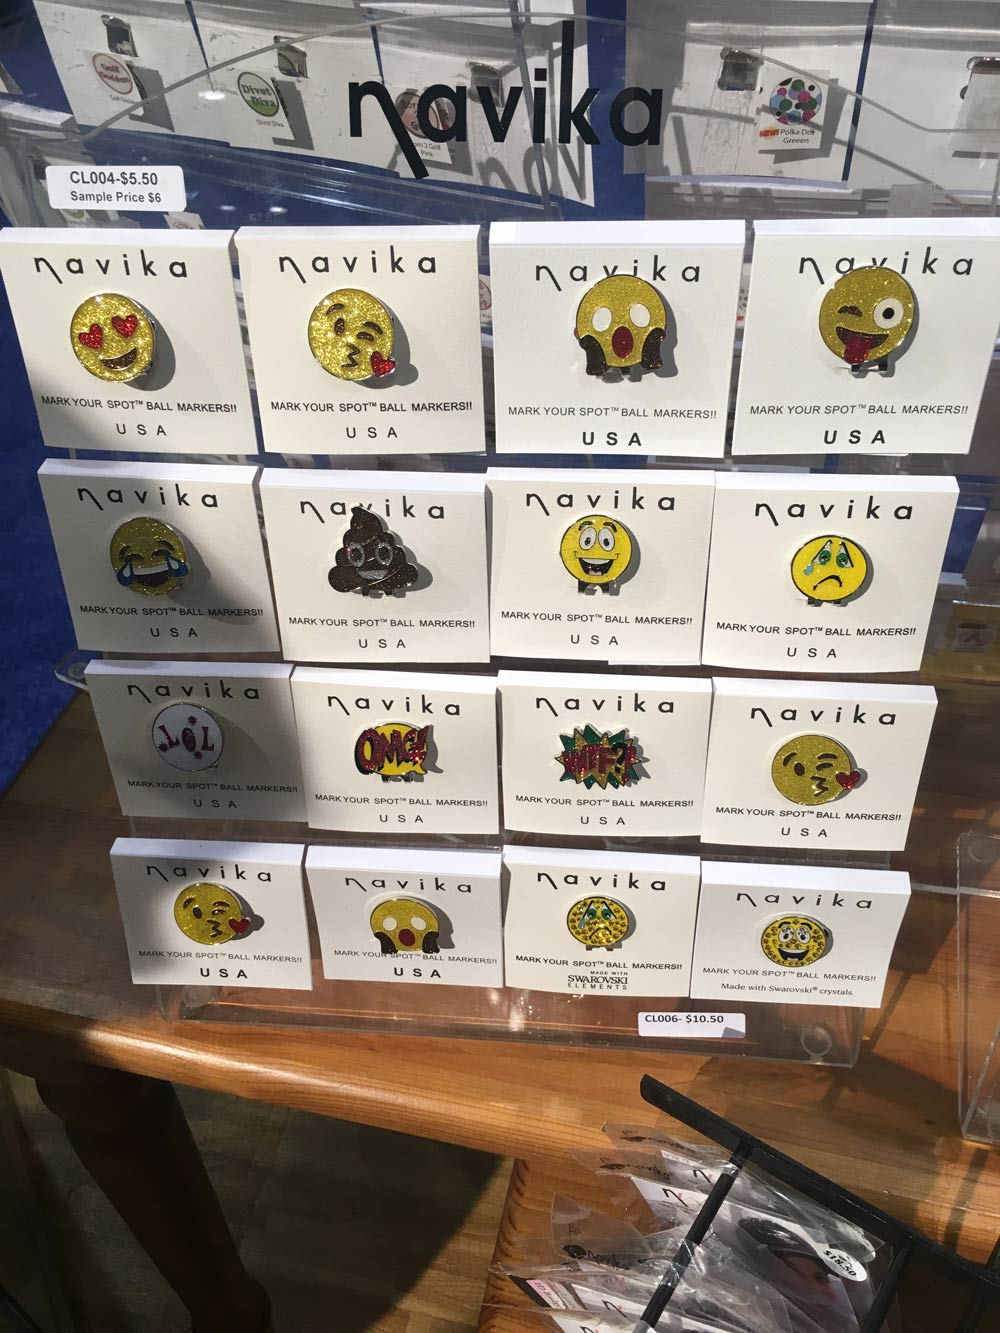 Navika ball markers are a favorite on the LPGA Tour, and who could resist a bedazzled emoji marker? $20.95; navika.com